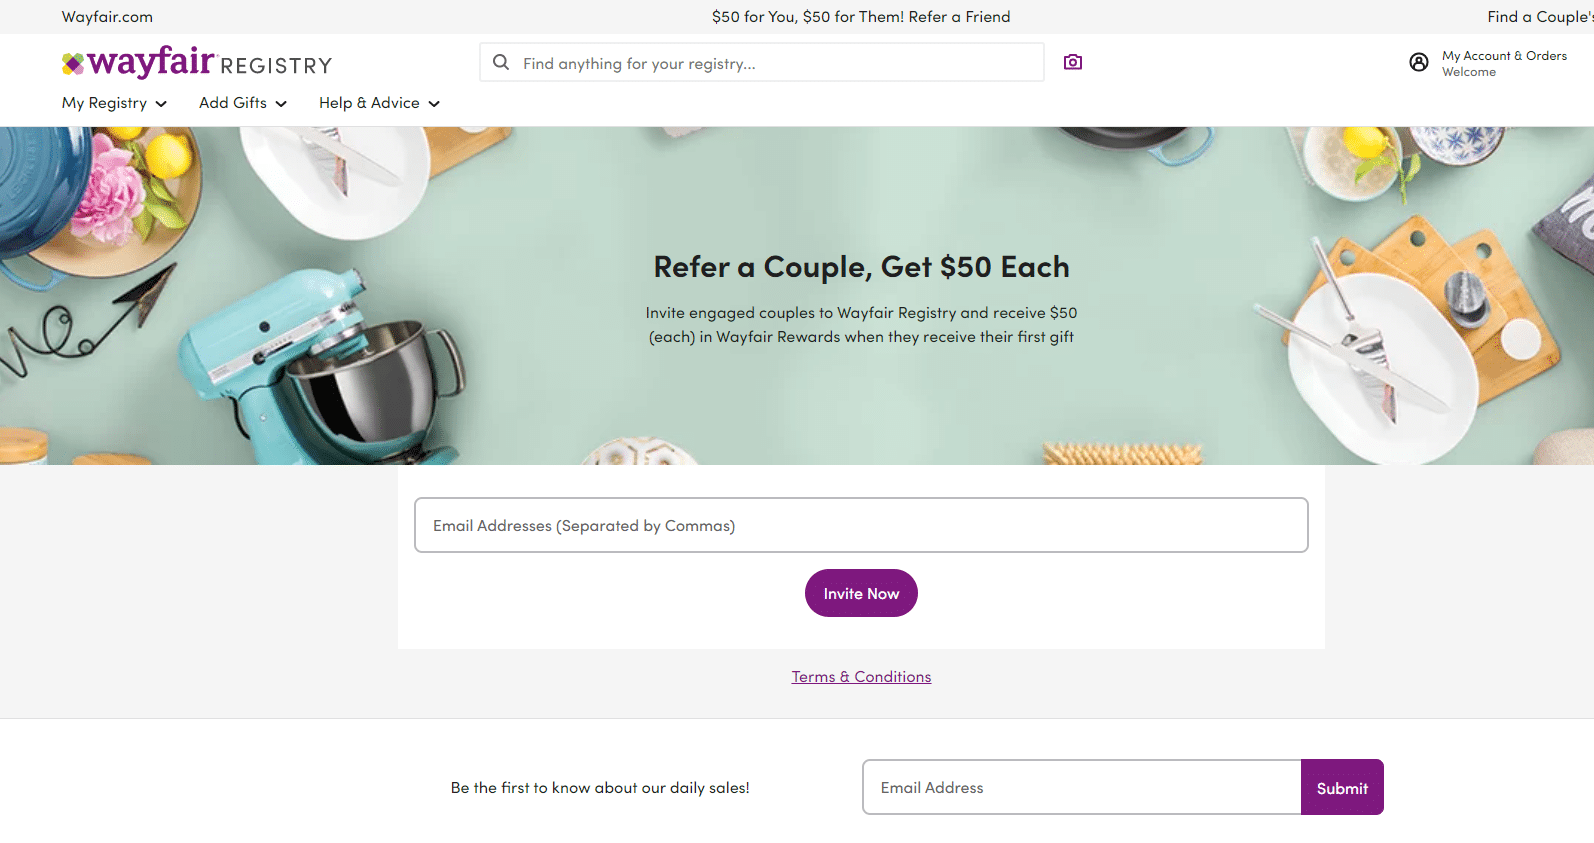 $50 off refer a couple discount in wayfair